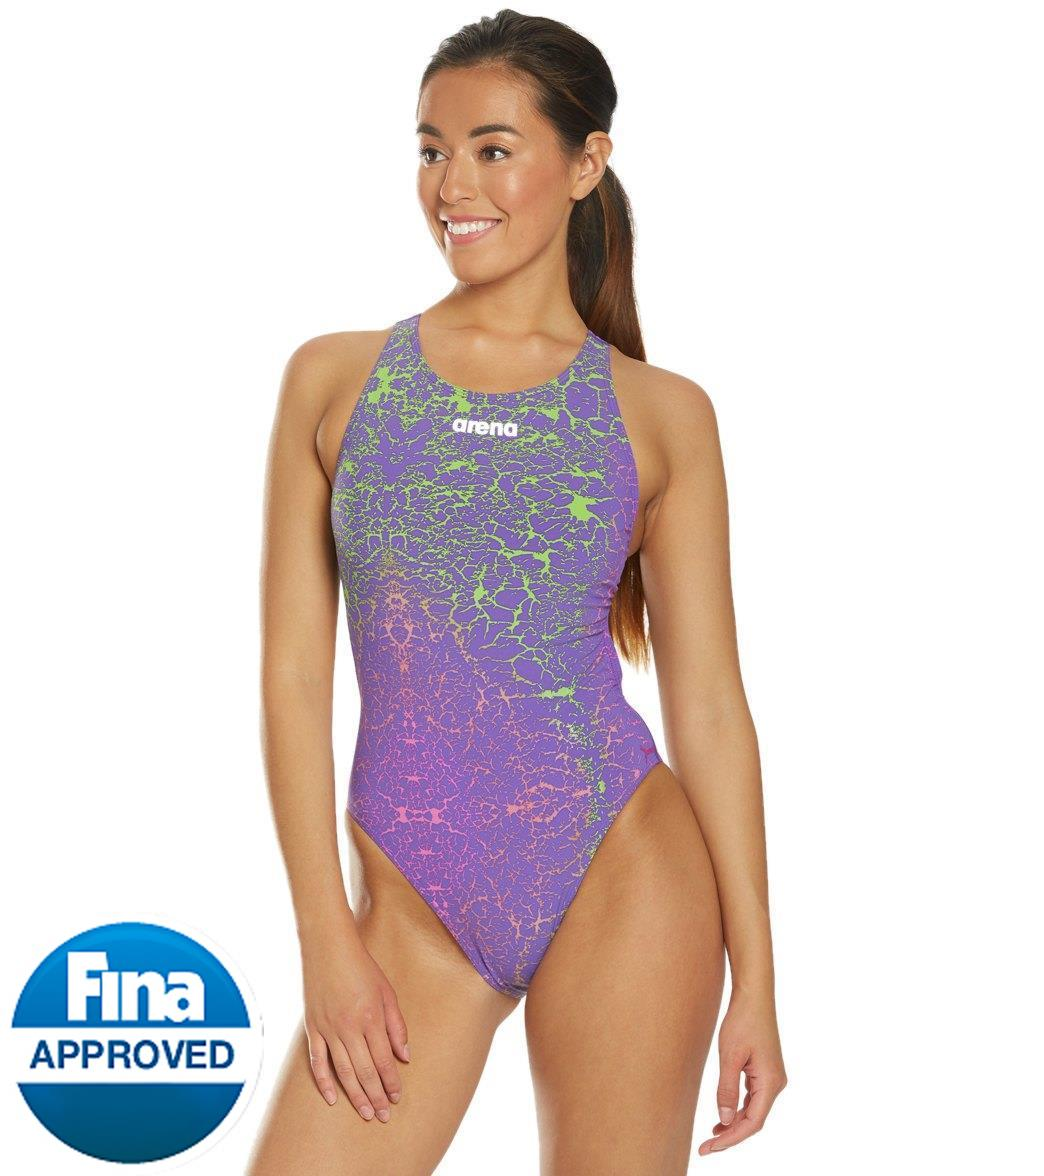 Arena ST Powerskin 2.0 Classic One Piece Limited Edition (12 under approved)